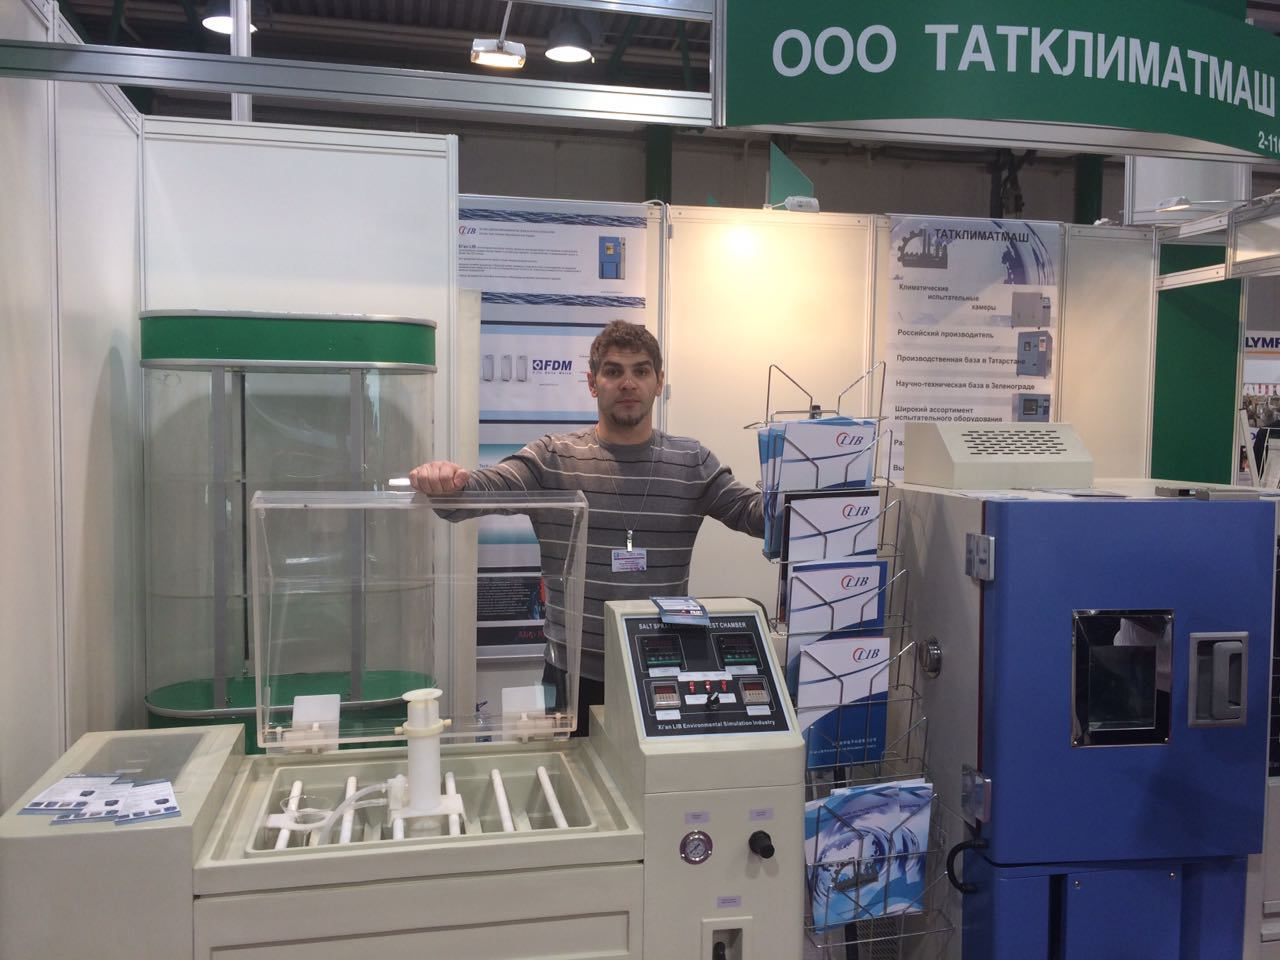 LIB Salt spray tester and temperature humidity chamber exhibition